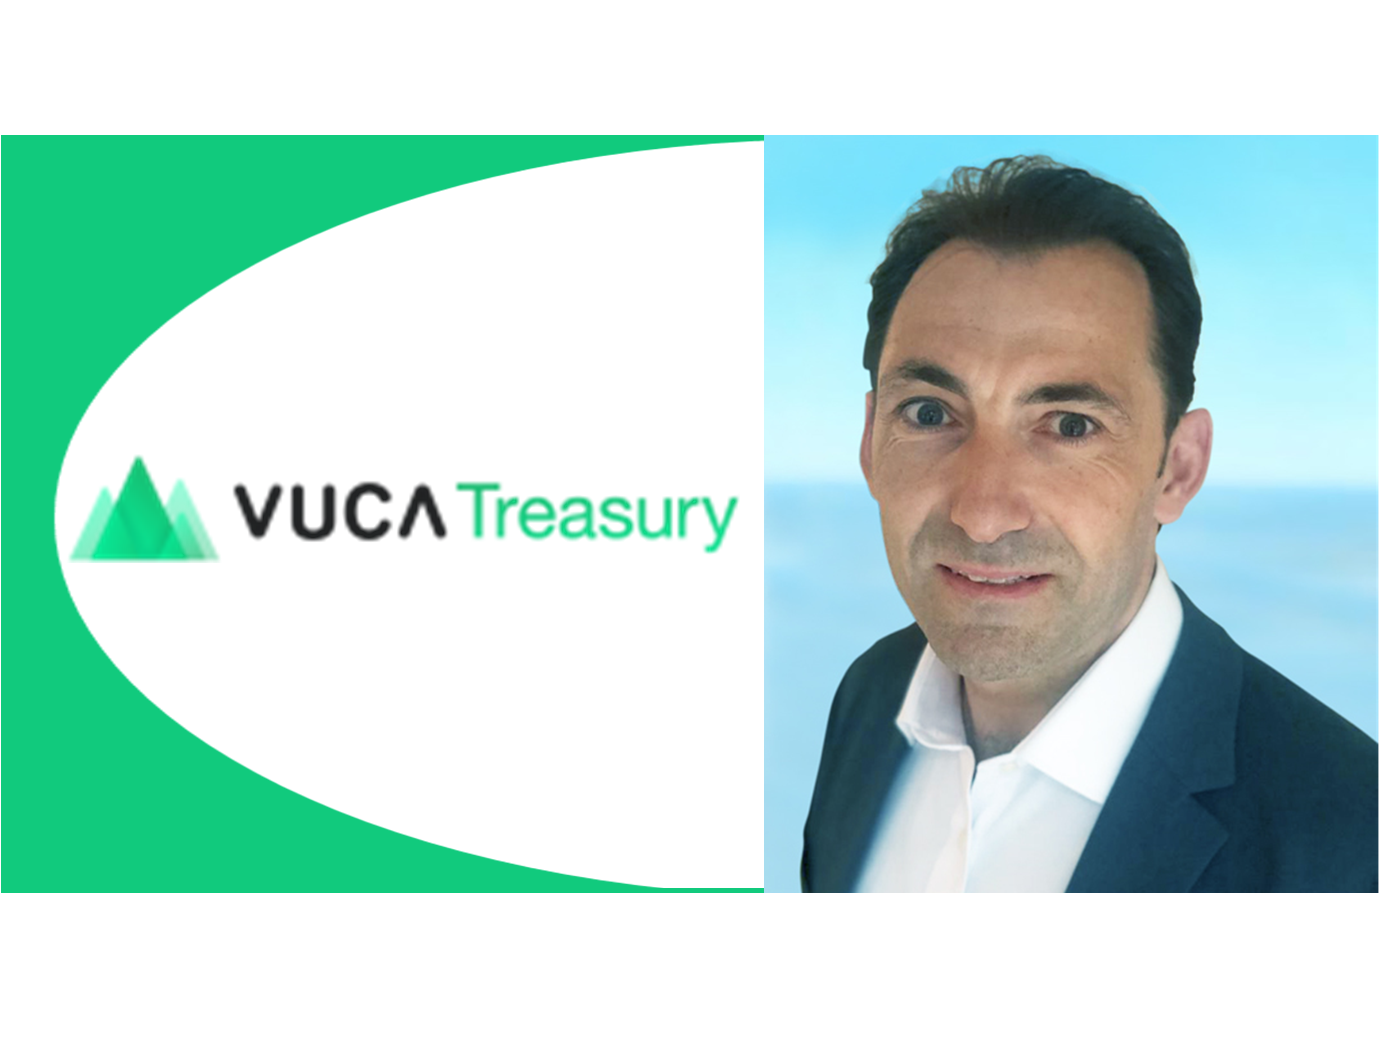 Vuca Treasury London - Ex-Bankers helping business clients improve the way they manage financial risks